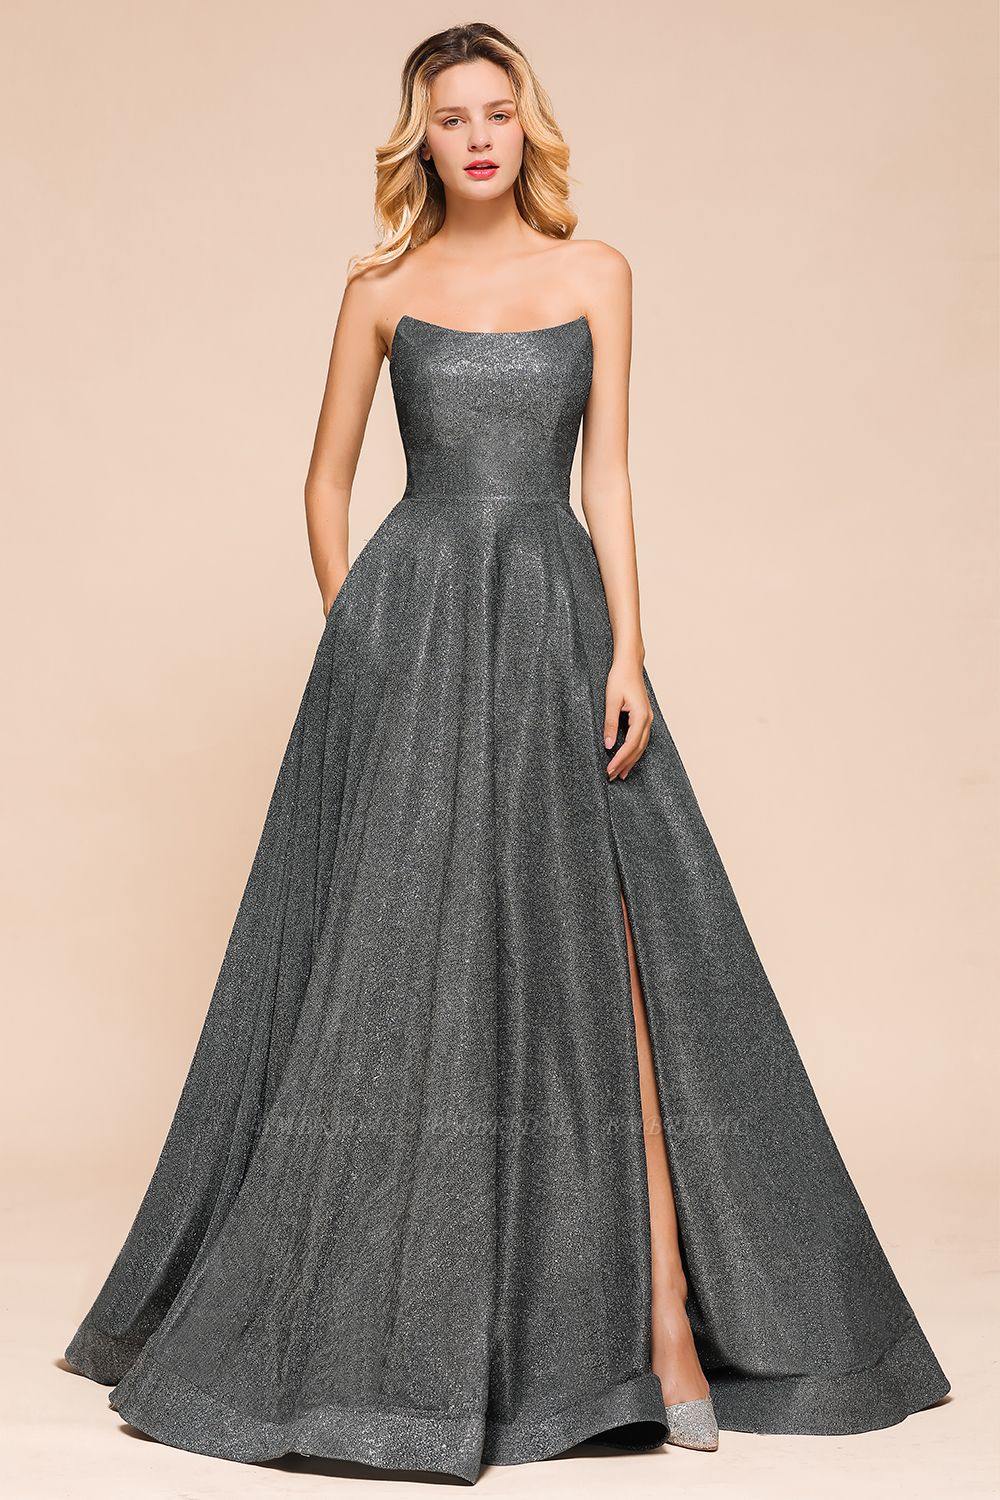 BMbridal Shinning Strapless Long Prom Dress Lace-up Evening Gowns With Split